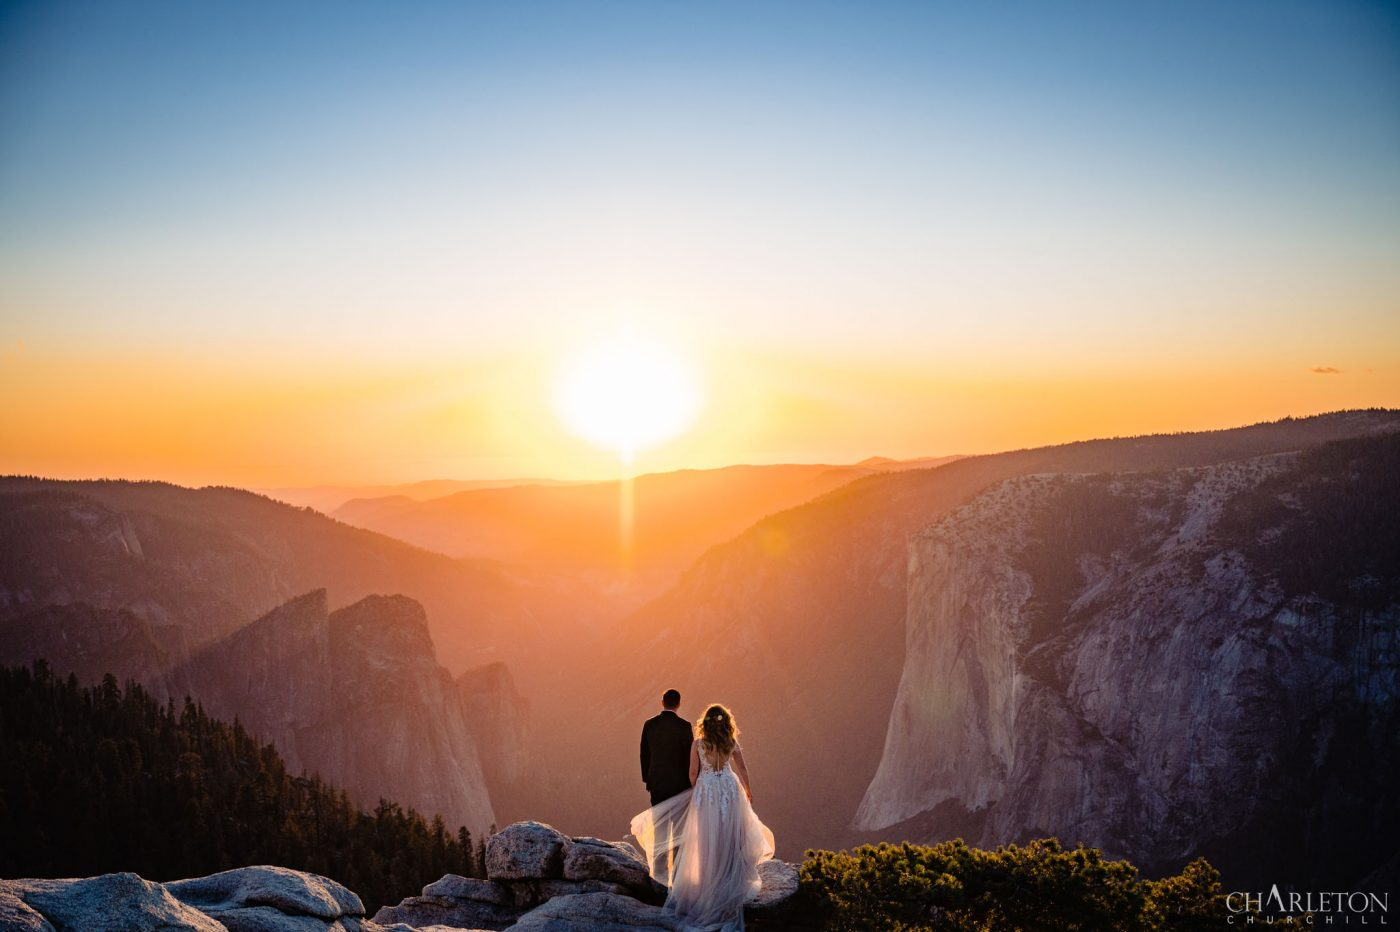 Rush Creek Lodge wedding ceremony in Yosemite national park at sunset at Taft point and Sentinel point